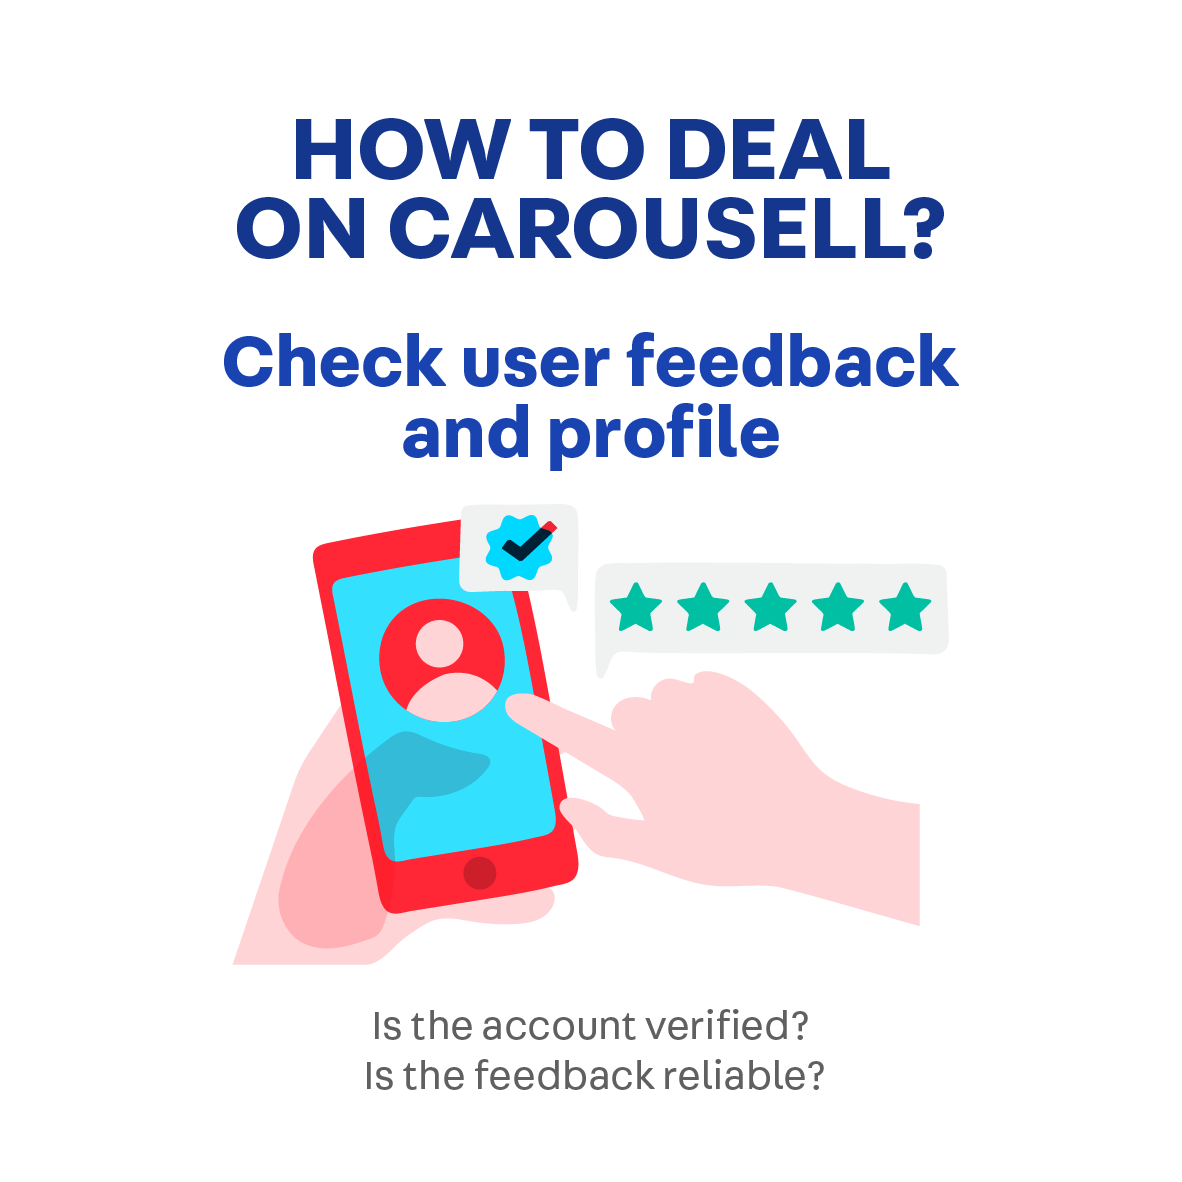 How to deal safely on Carousell.